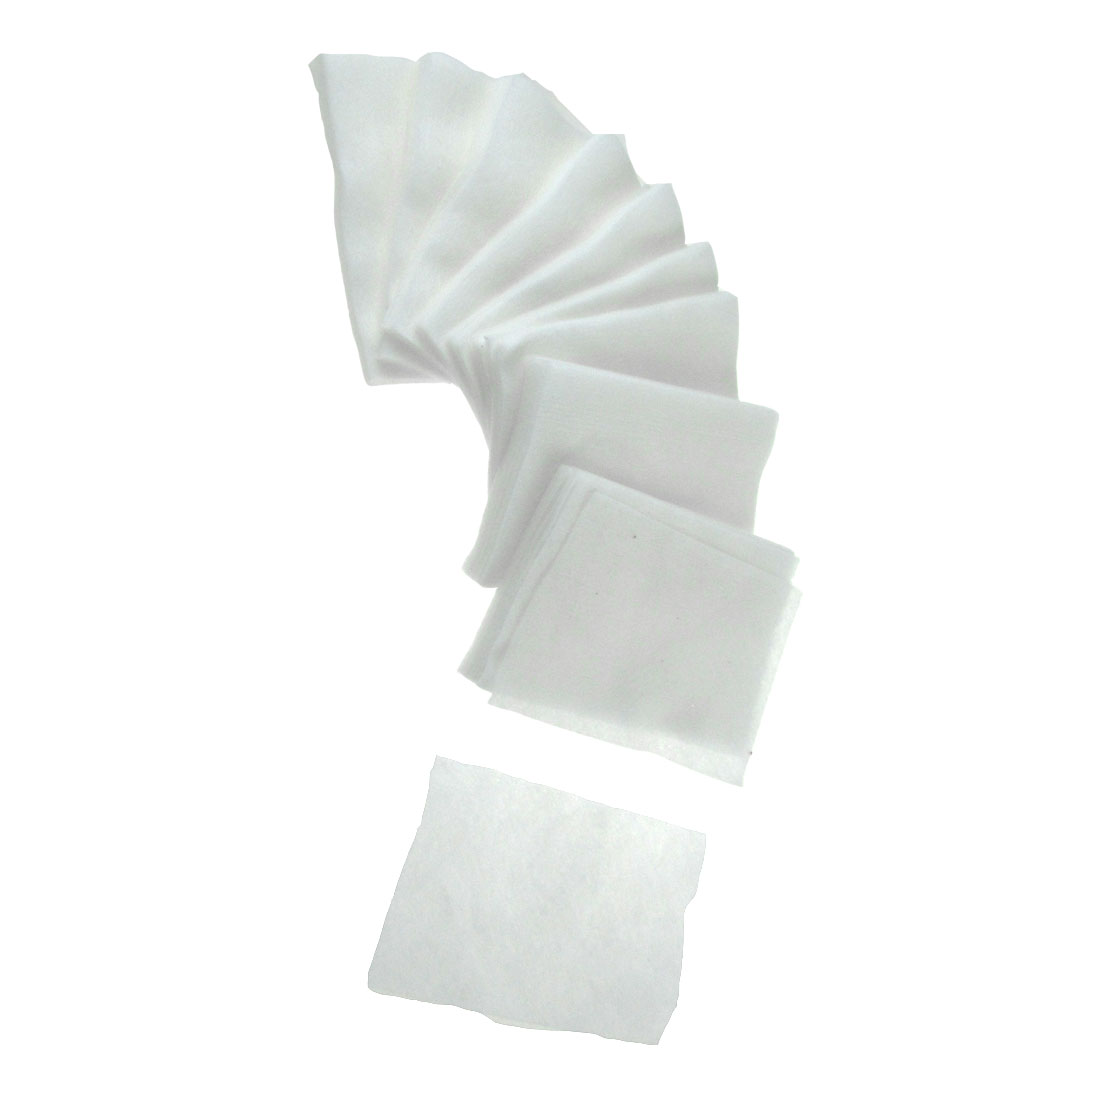 Makeup Remover White Rectangle 90 x 60mm Cosmetic Cotton Pad Facial Puff 120 Pcs